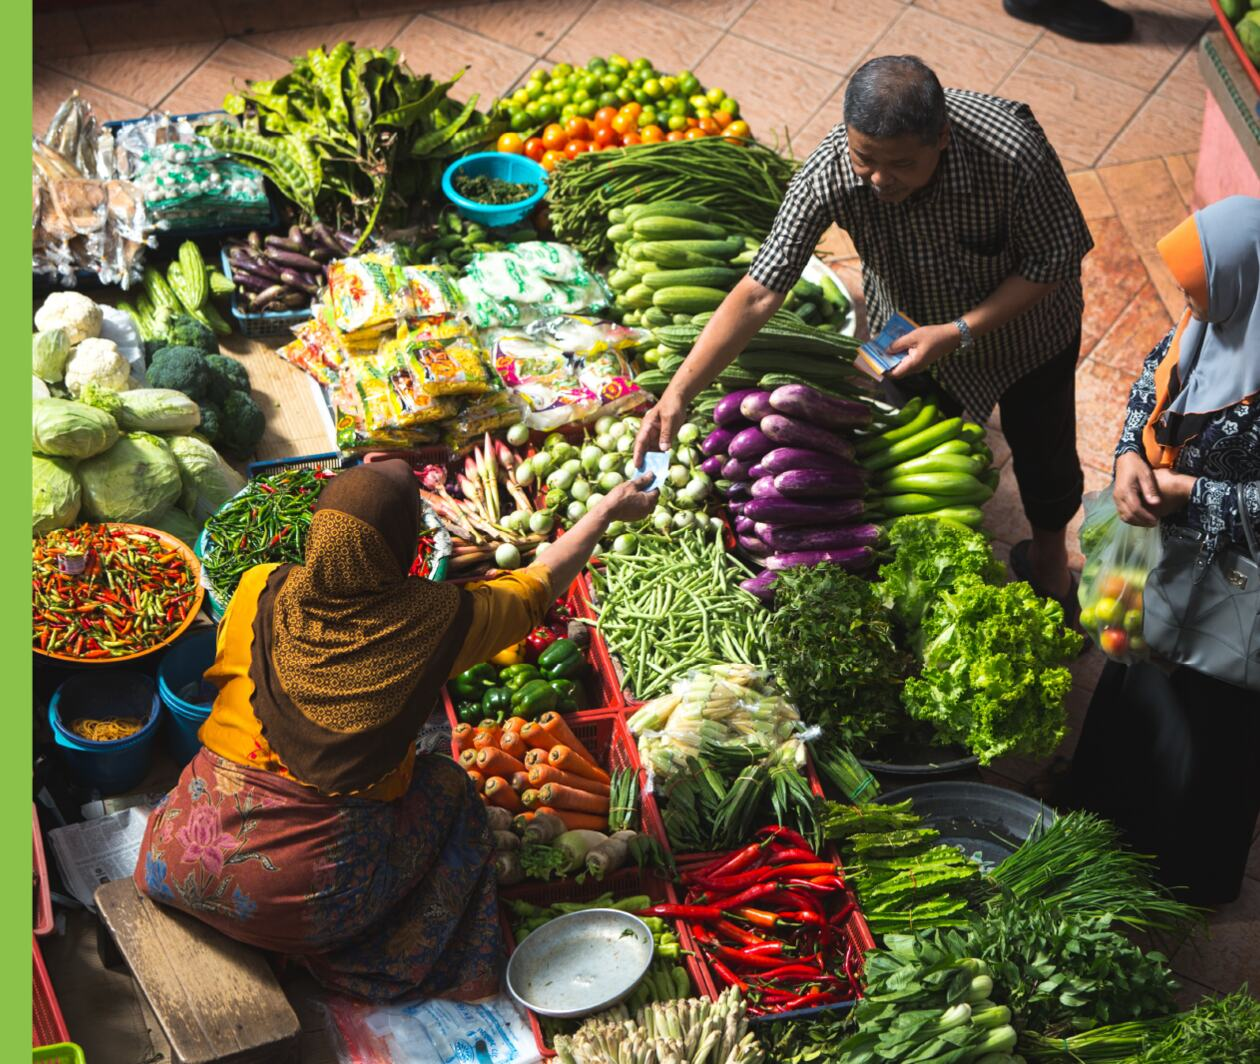 A Nutritional Approach to Agriculture and Food Security